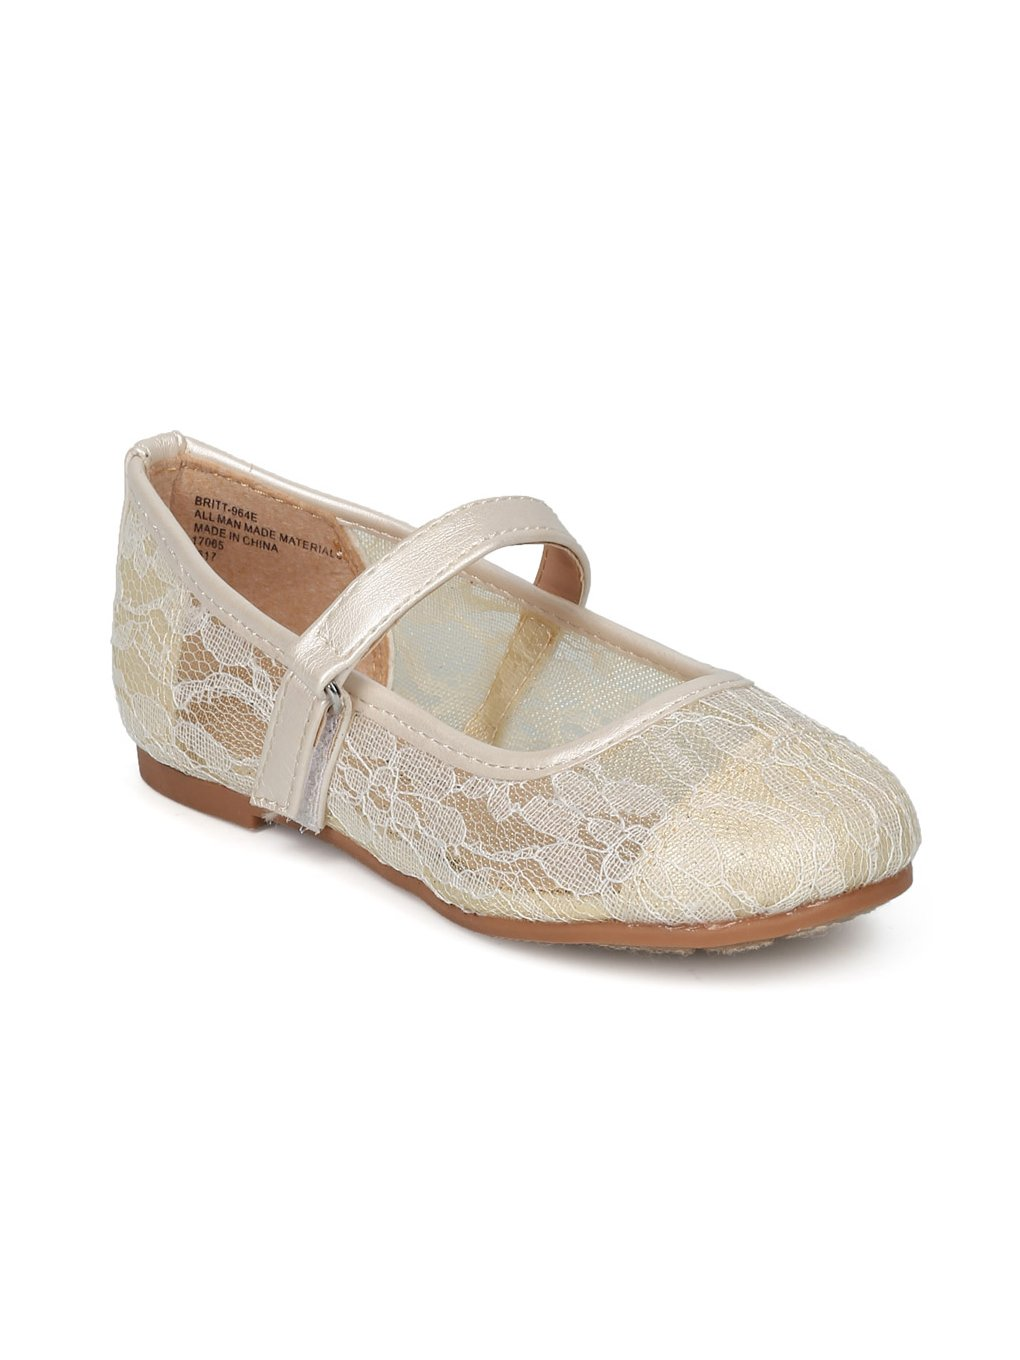 Alrisco Lace Mesh Capped Toe Mary Jane Ballet Flat HF23 - Ivy Mix Media (Size: Toddler 5)